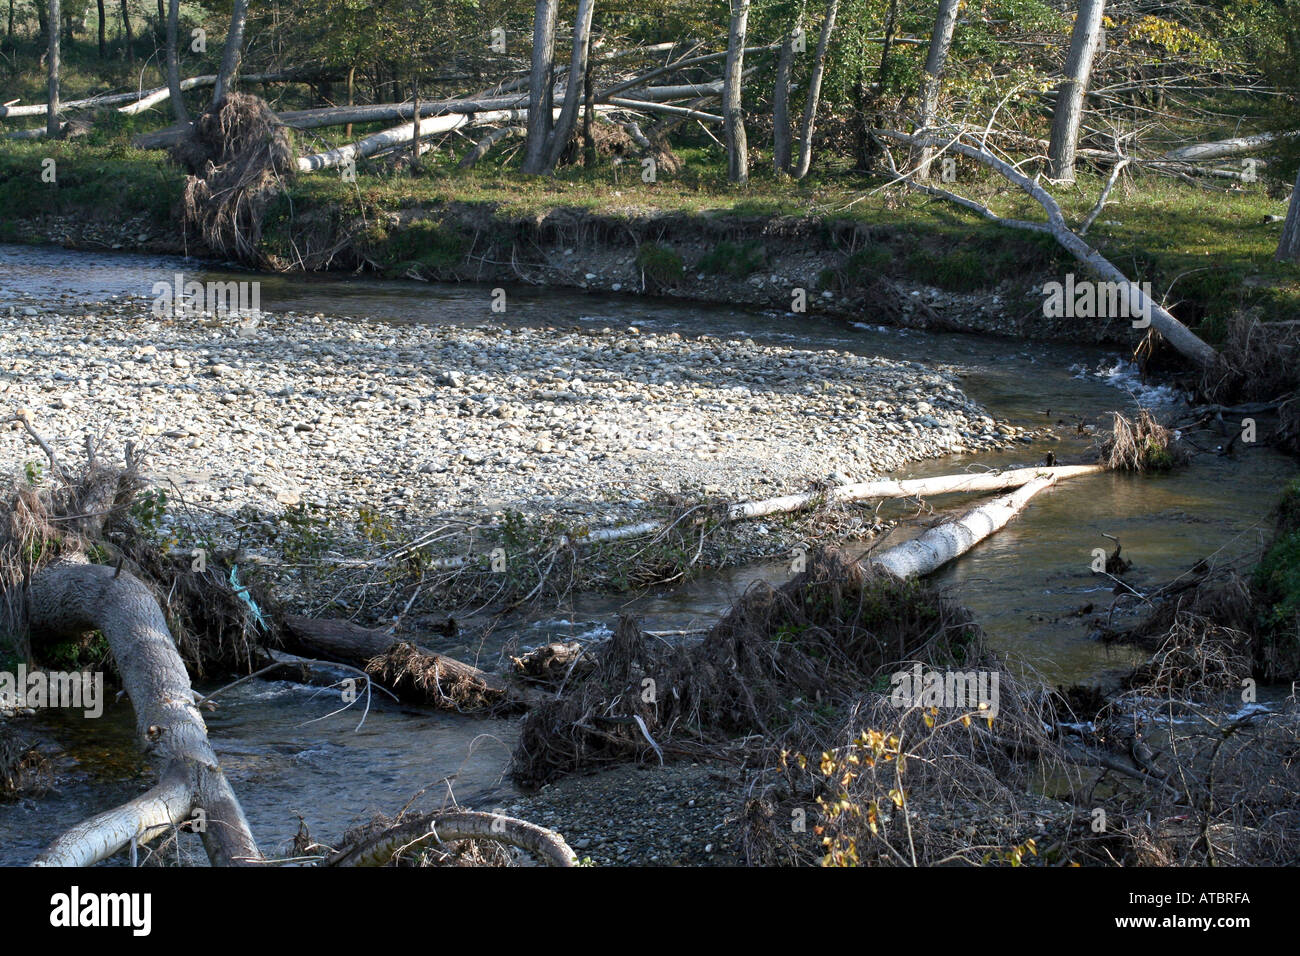 After the storm uprooted trees in the riverbed. - Stock Image